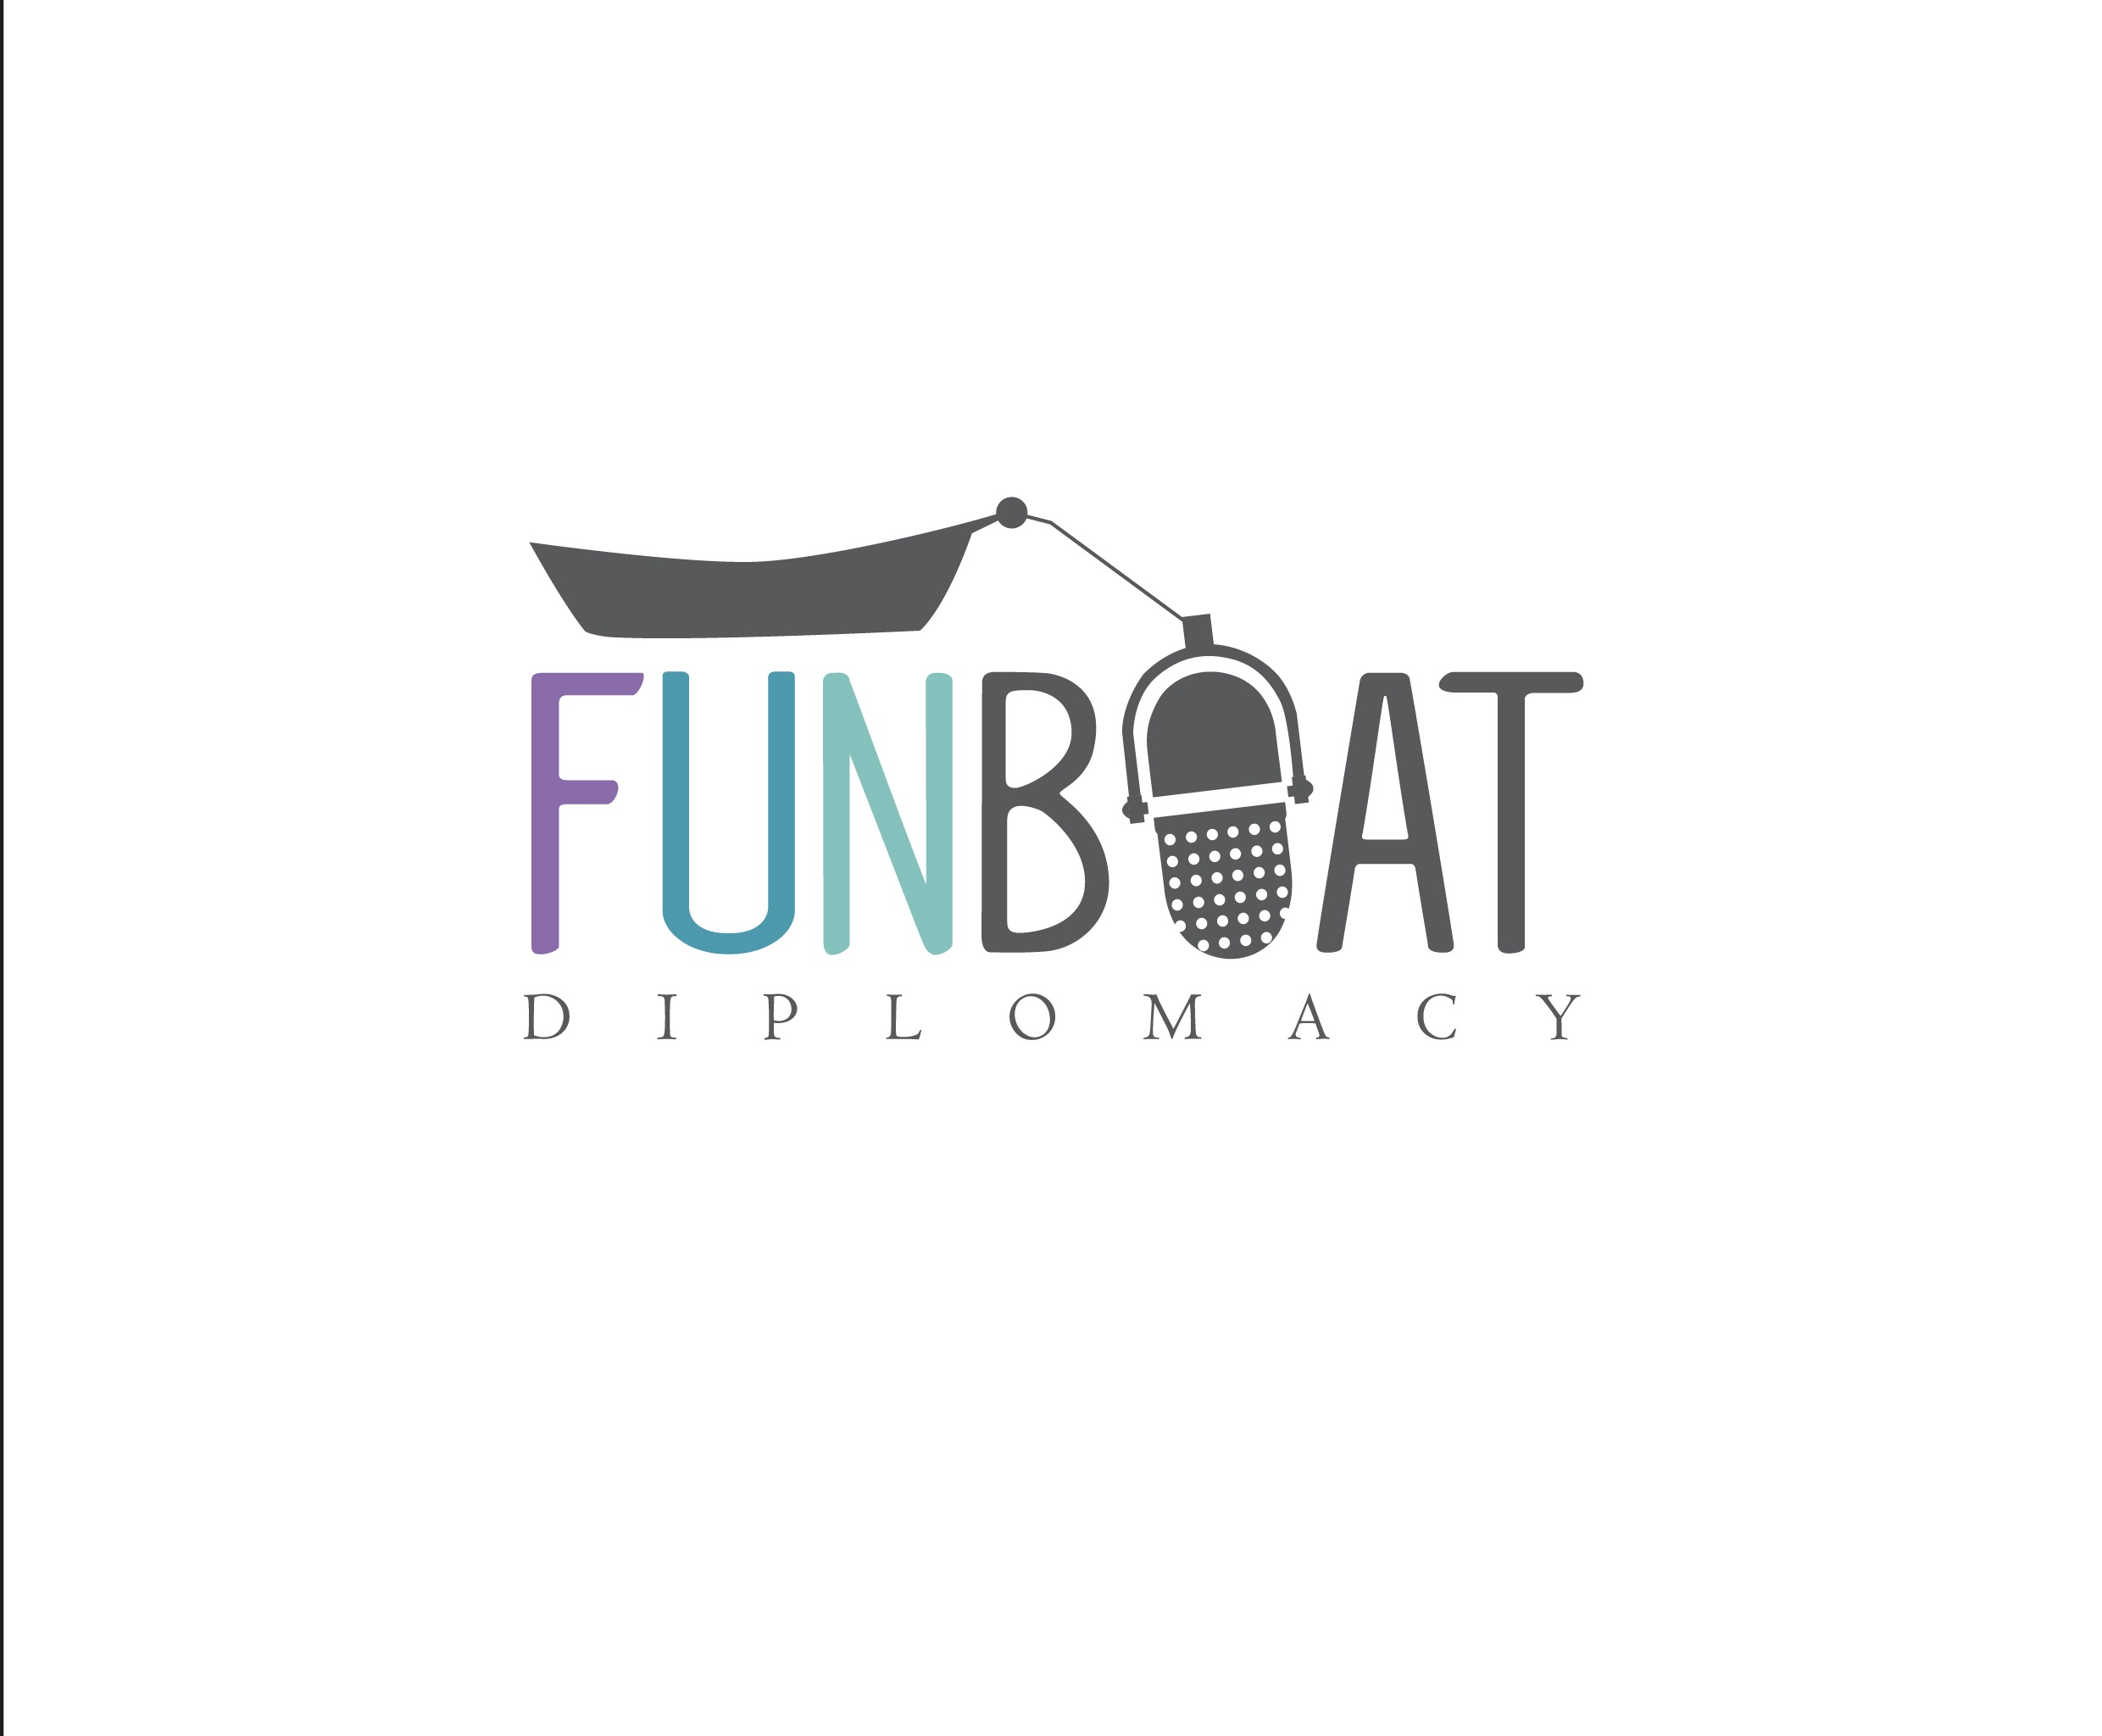 Funboat Diplomacy